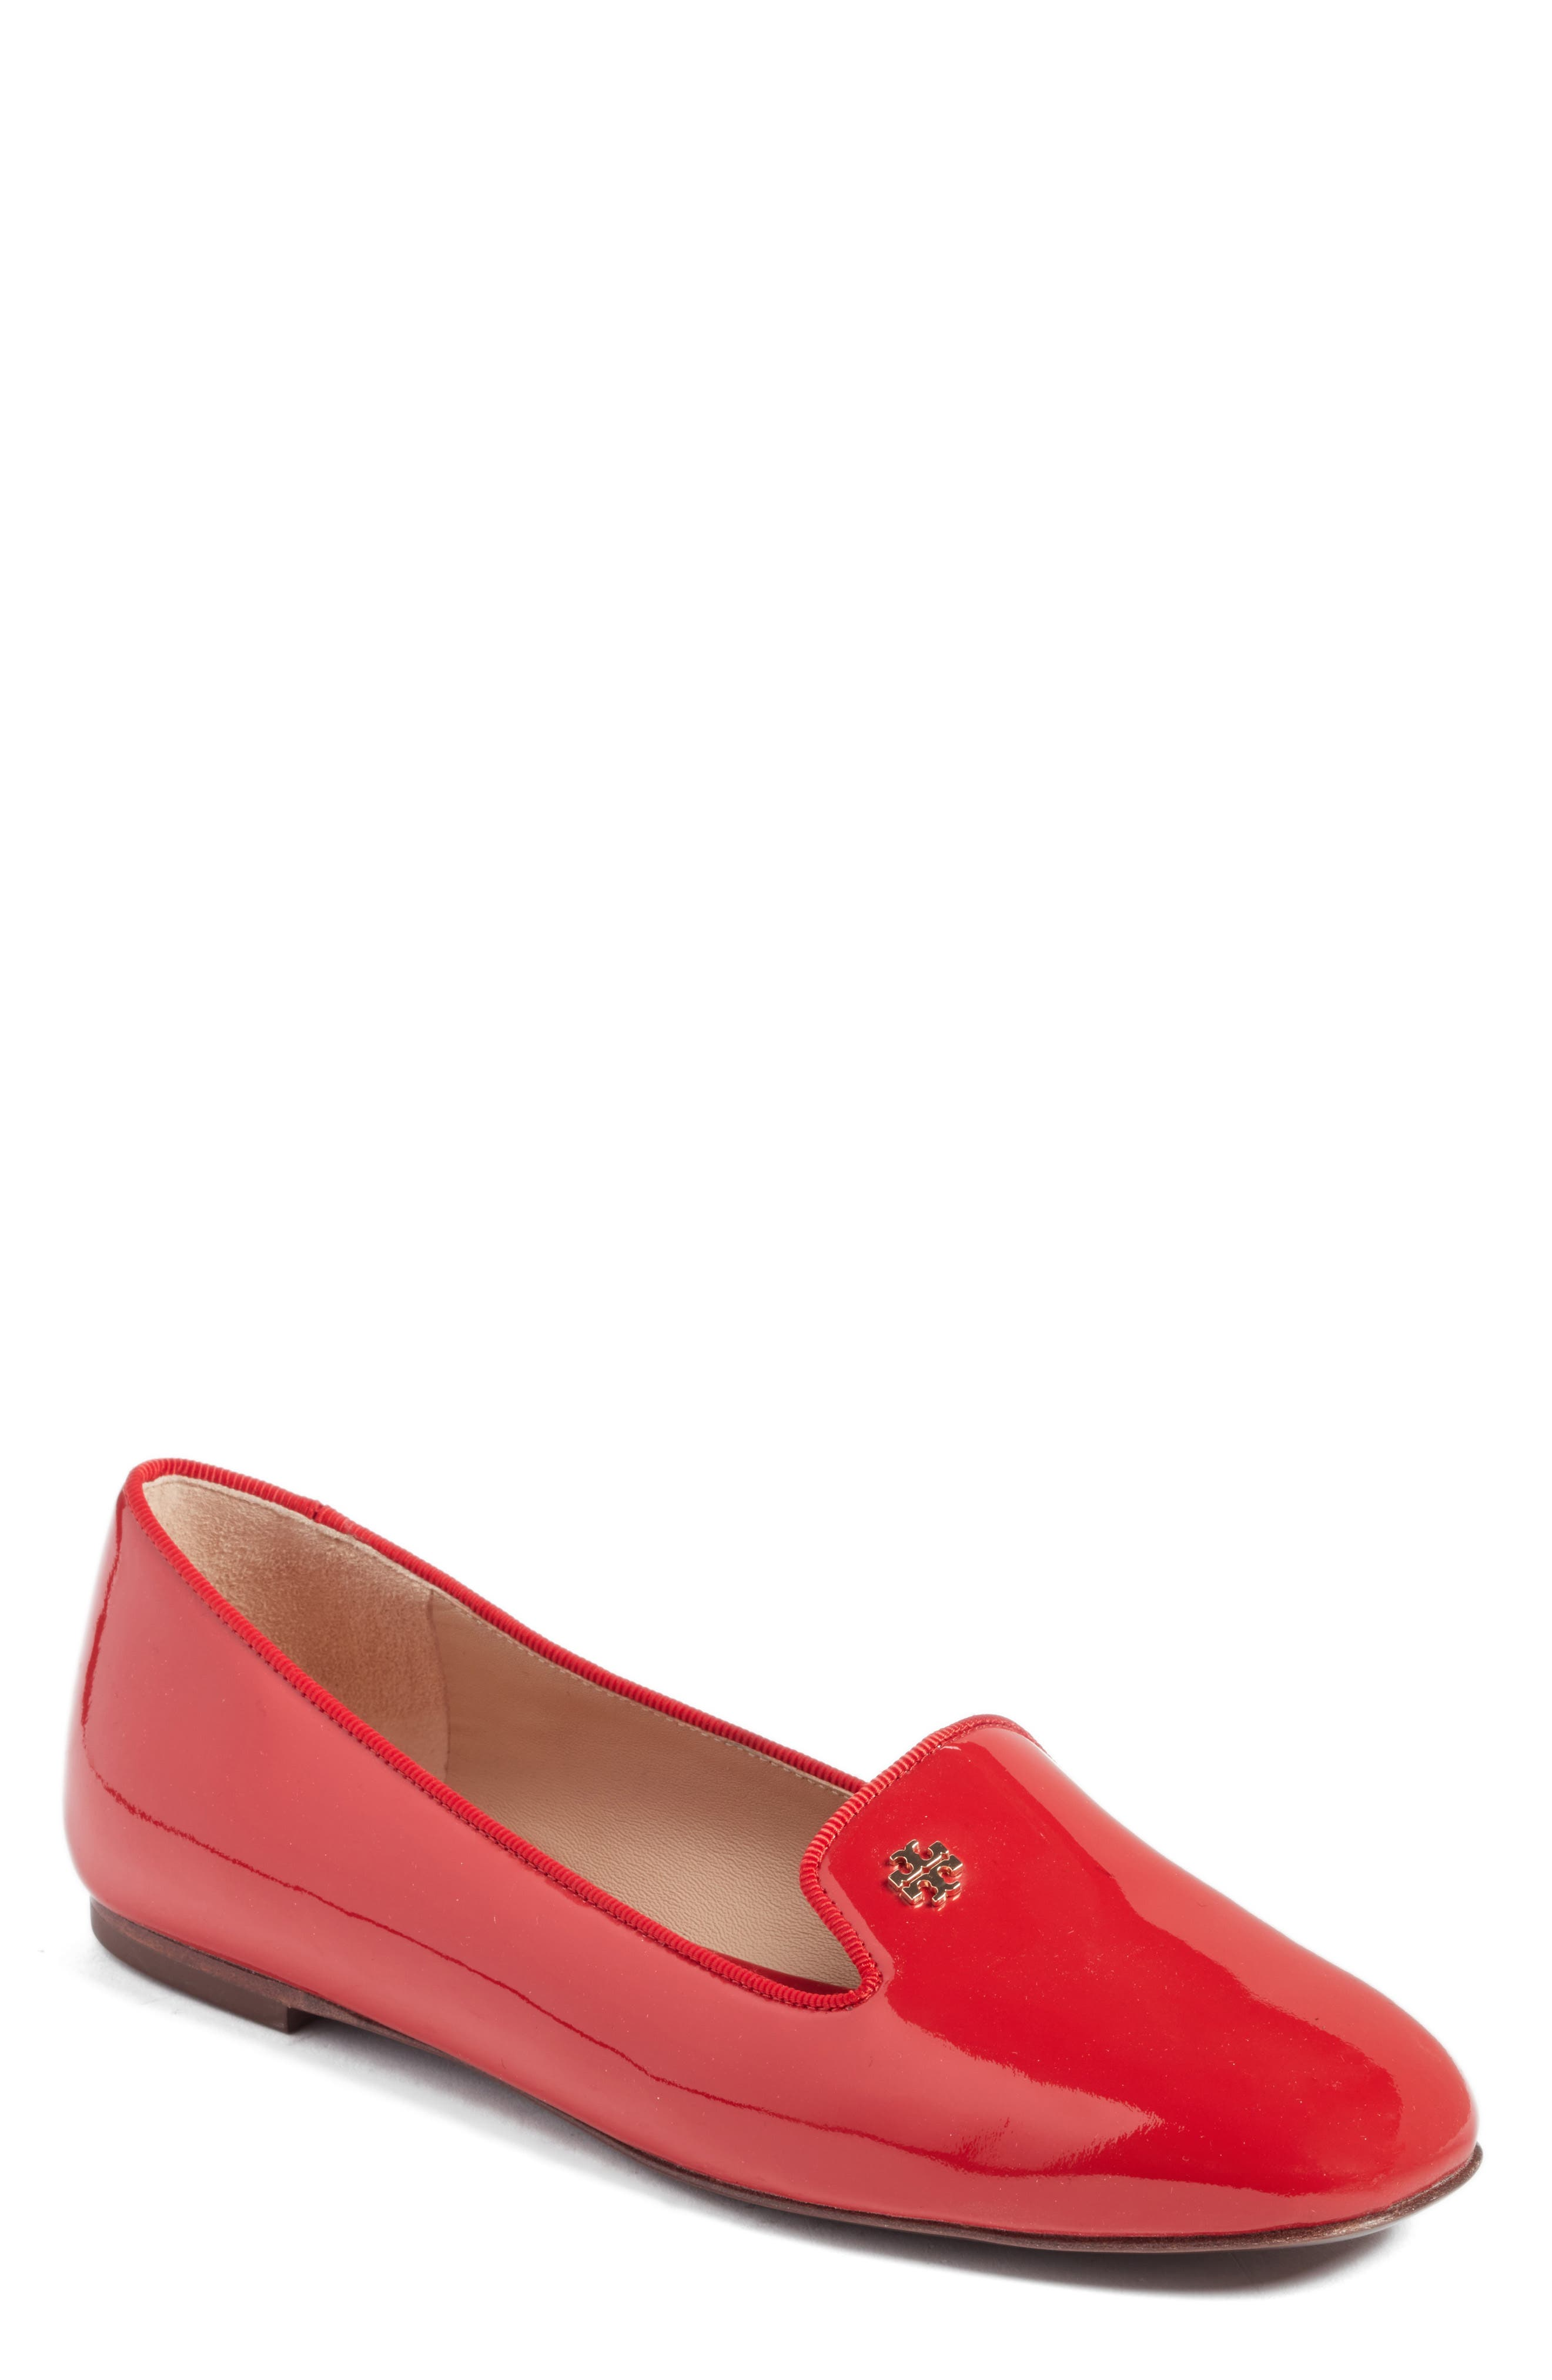 Tory Burch Samantha Loafer (Women)